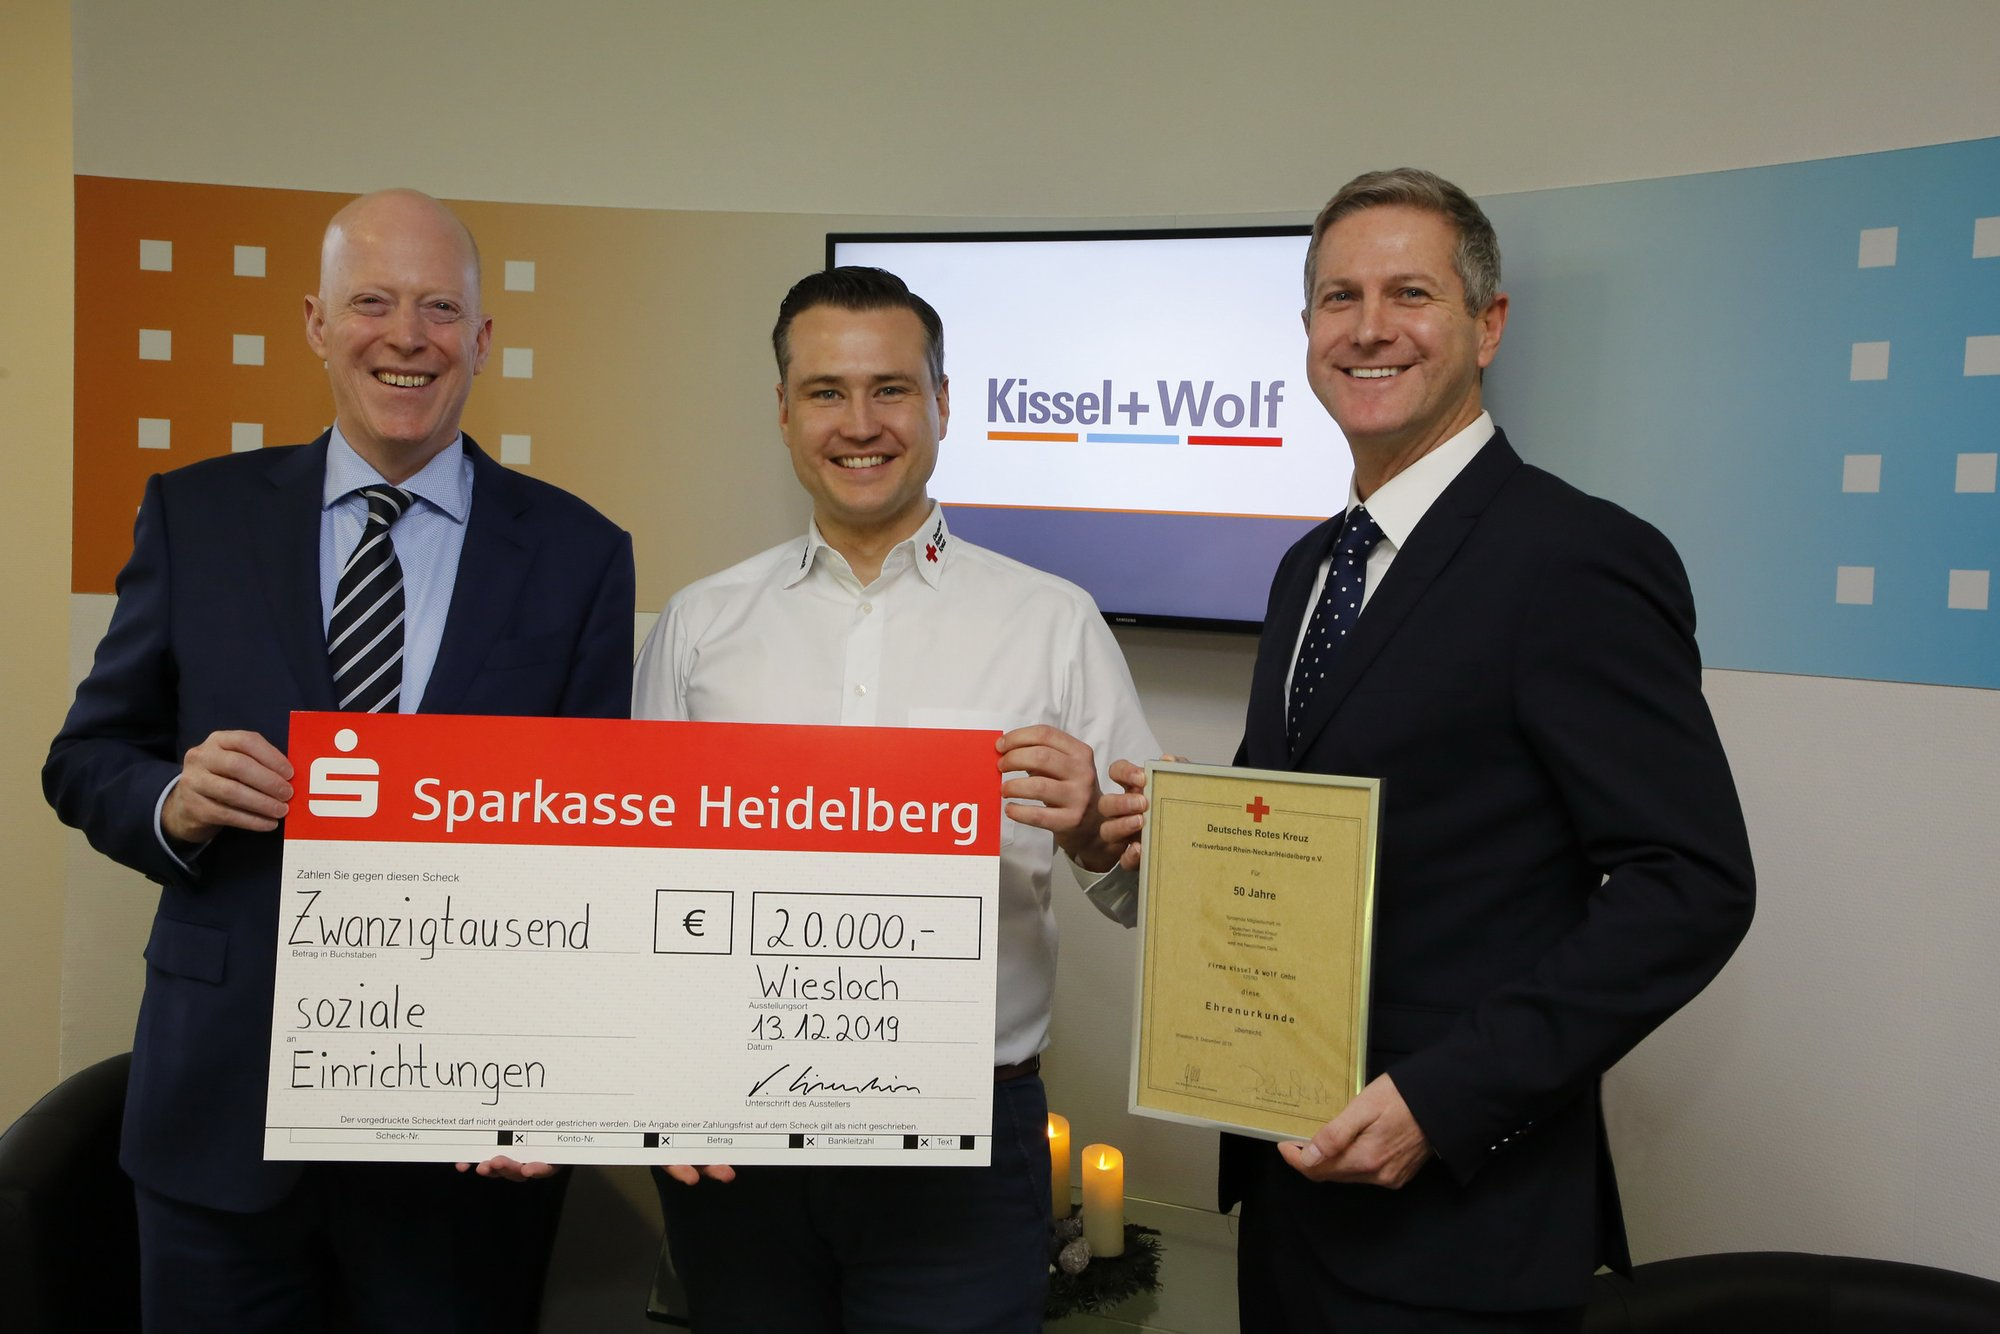 Kissel Und Wolf Spendenaktion 2019